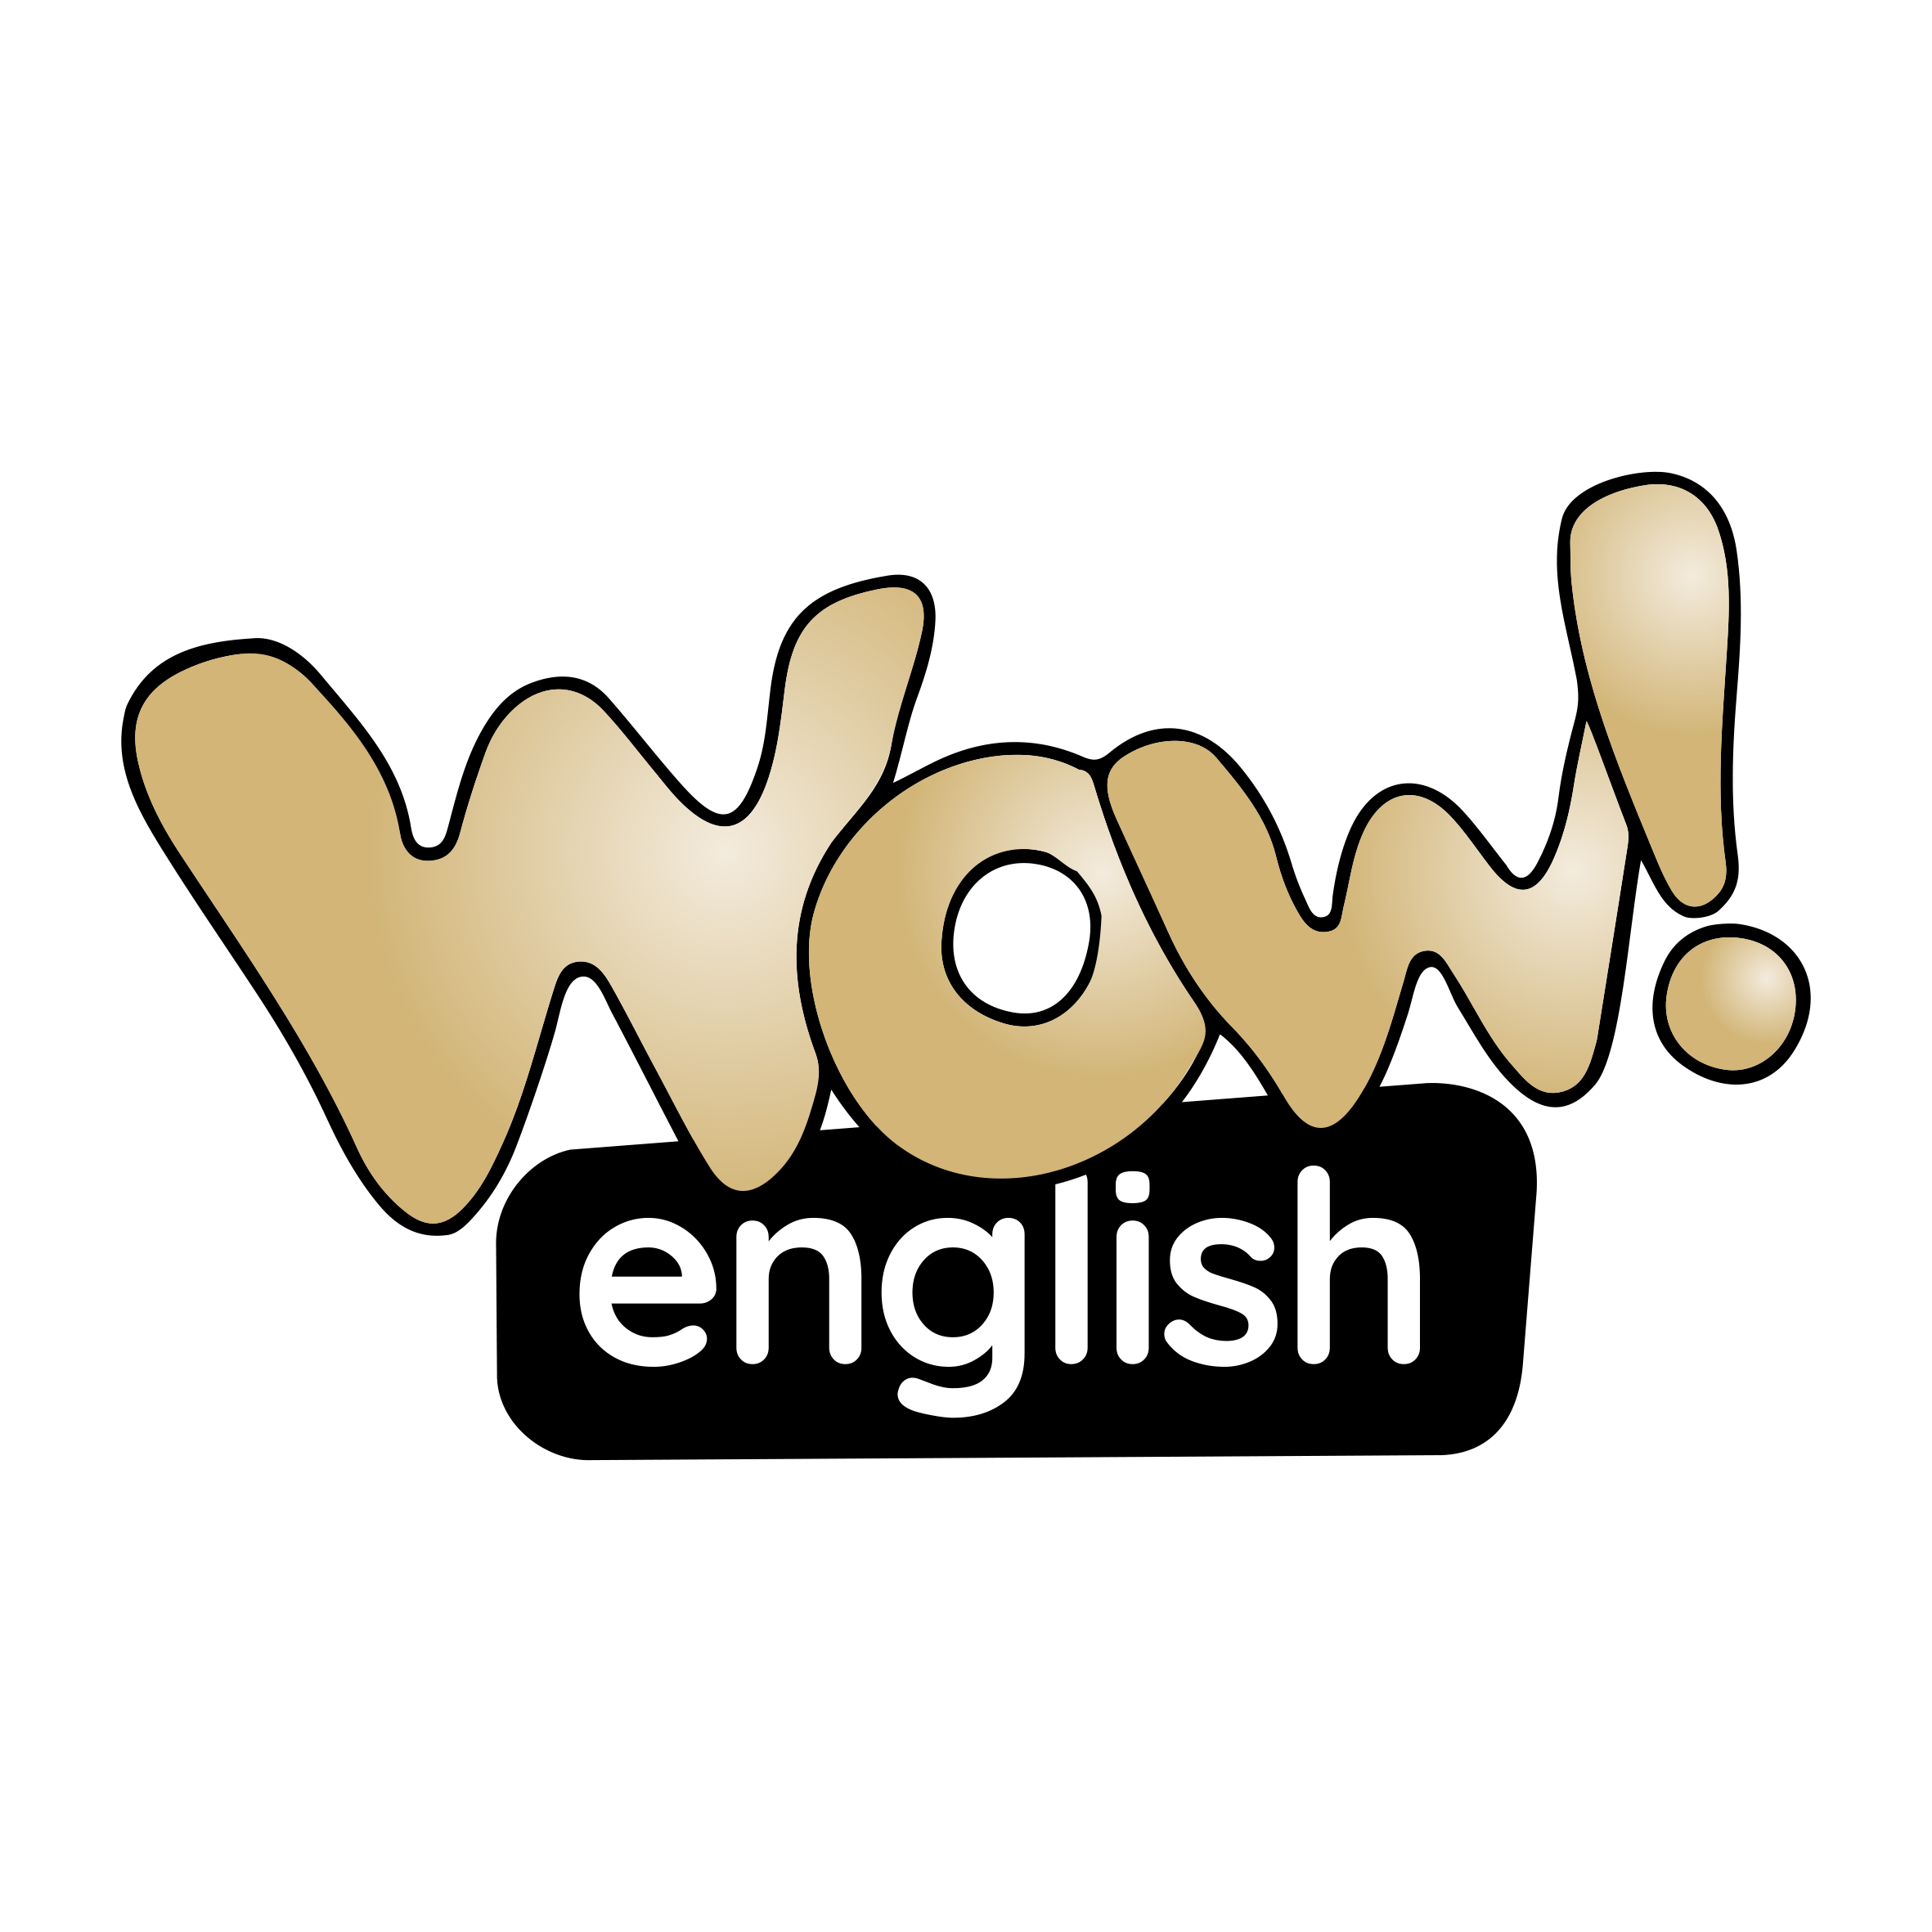 English . Wow clipart positive learning